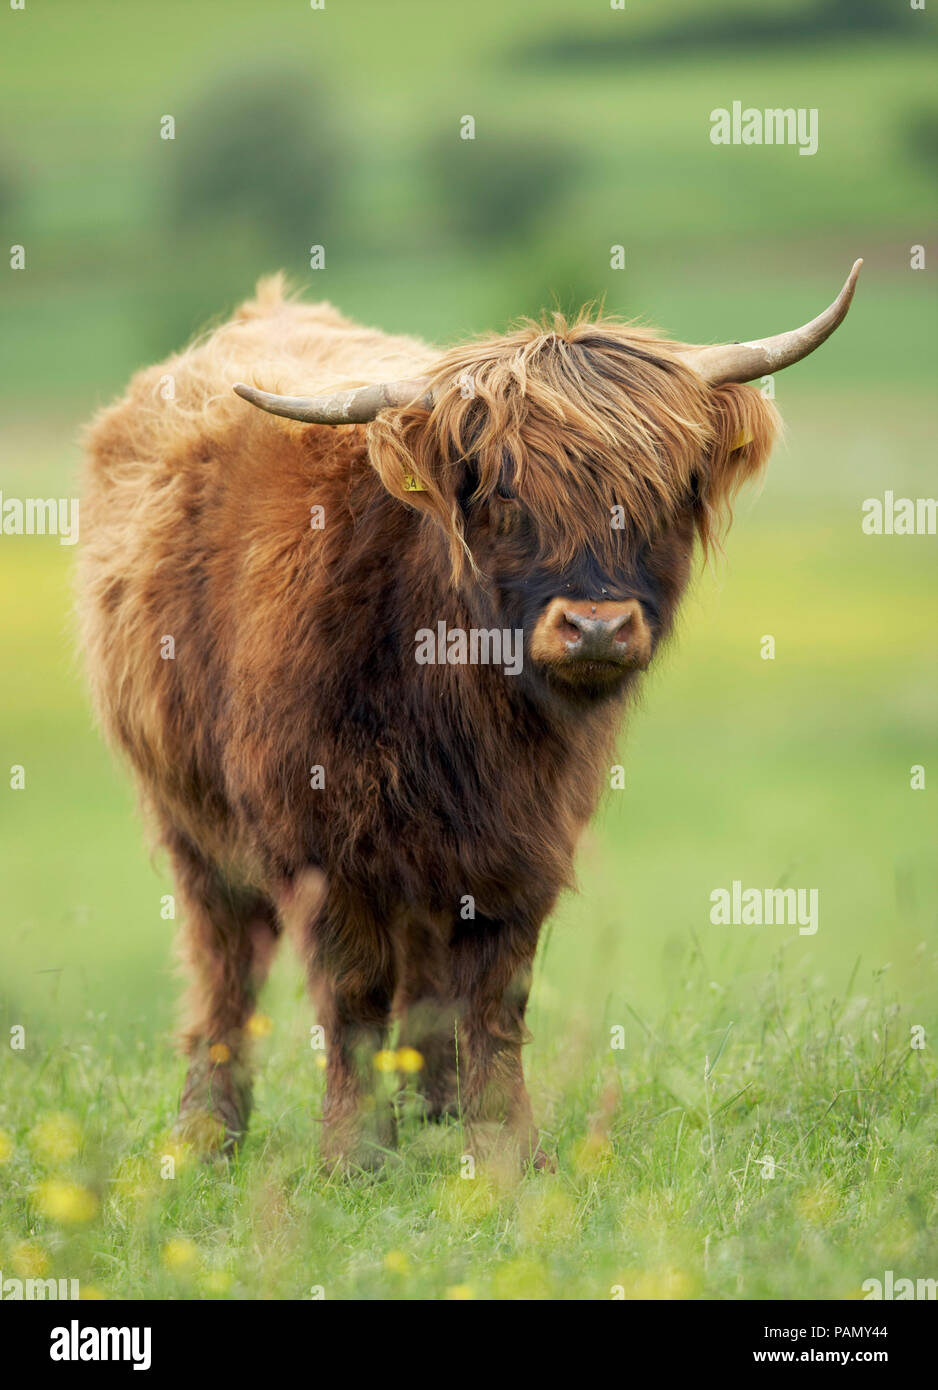 Highland Cattle. Single individual standing on a pasture. Germany - Stock Image